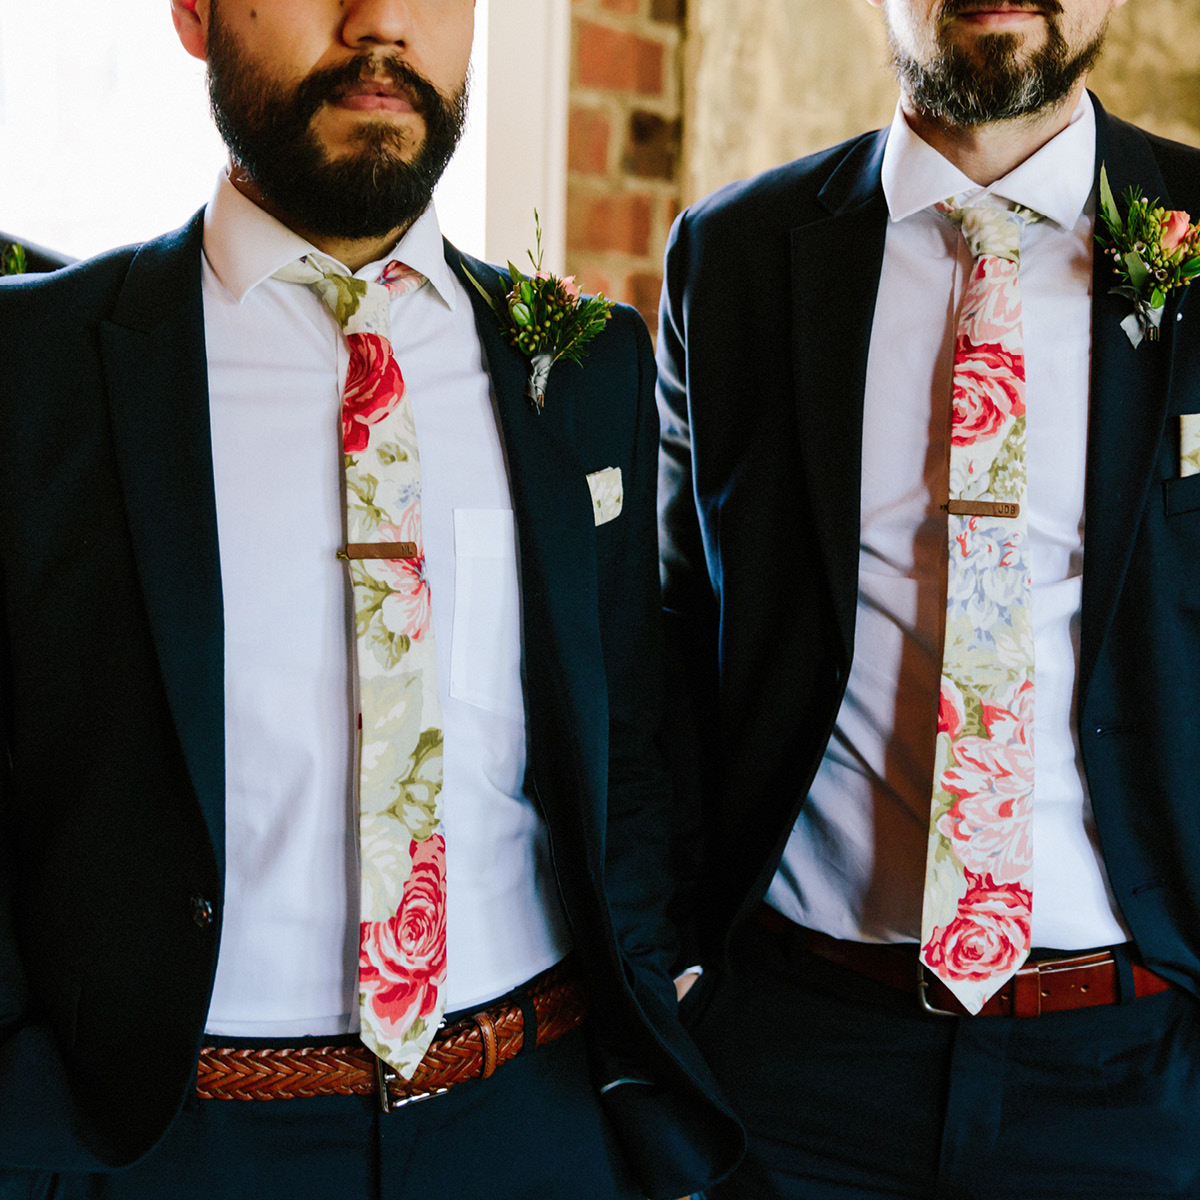 groomesmen, tie, tie bar, suits, wedding